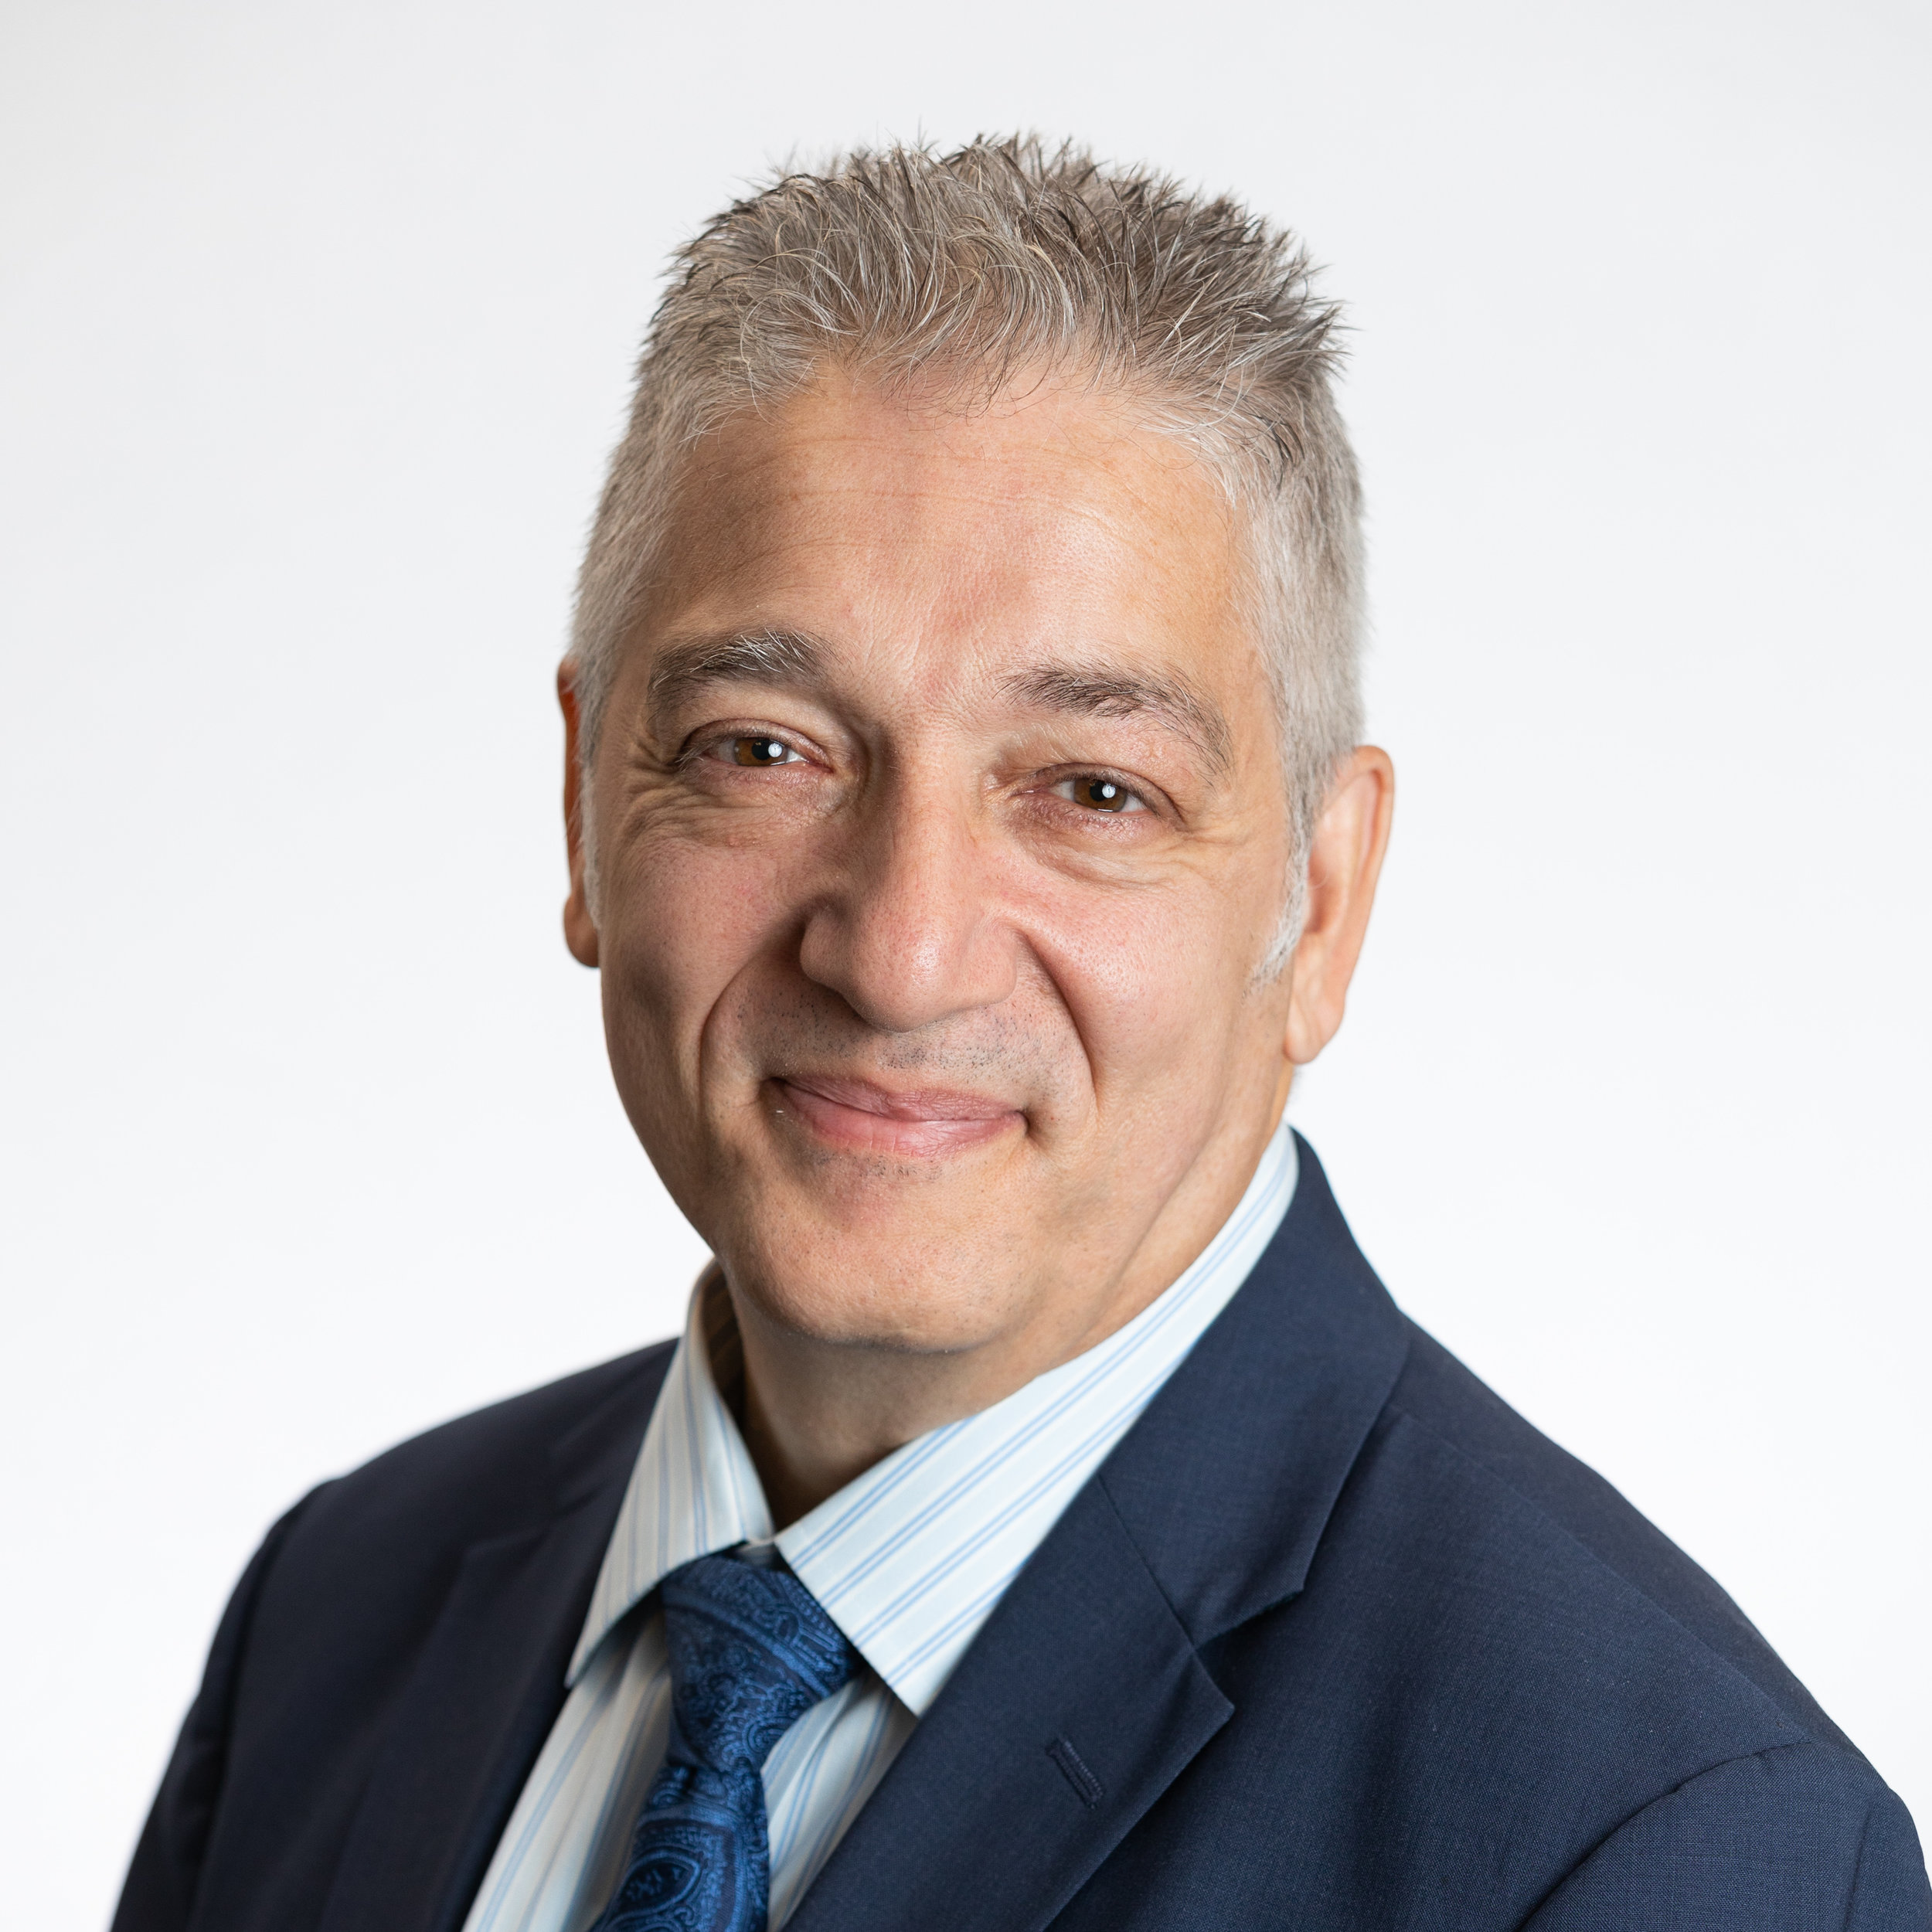 George Samiou - DIRECTOR OF PROJECTMANAGEMENT